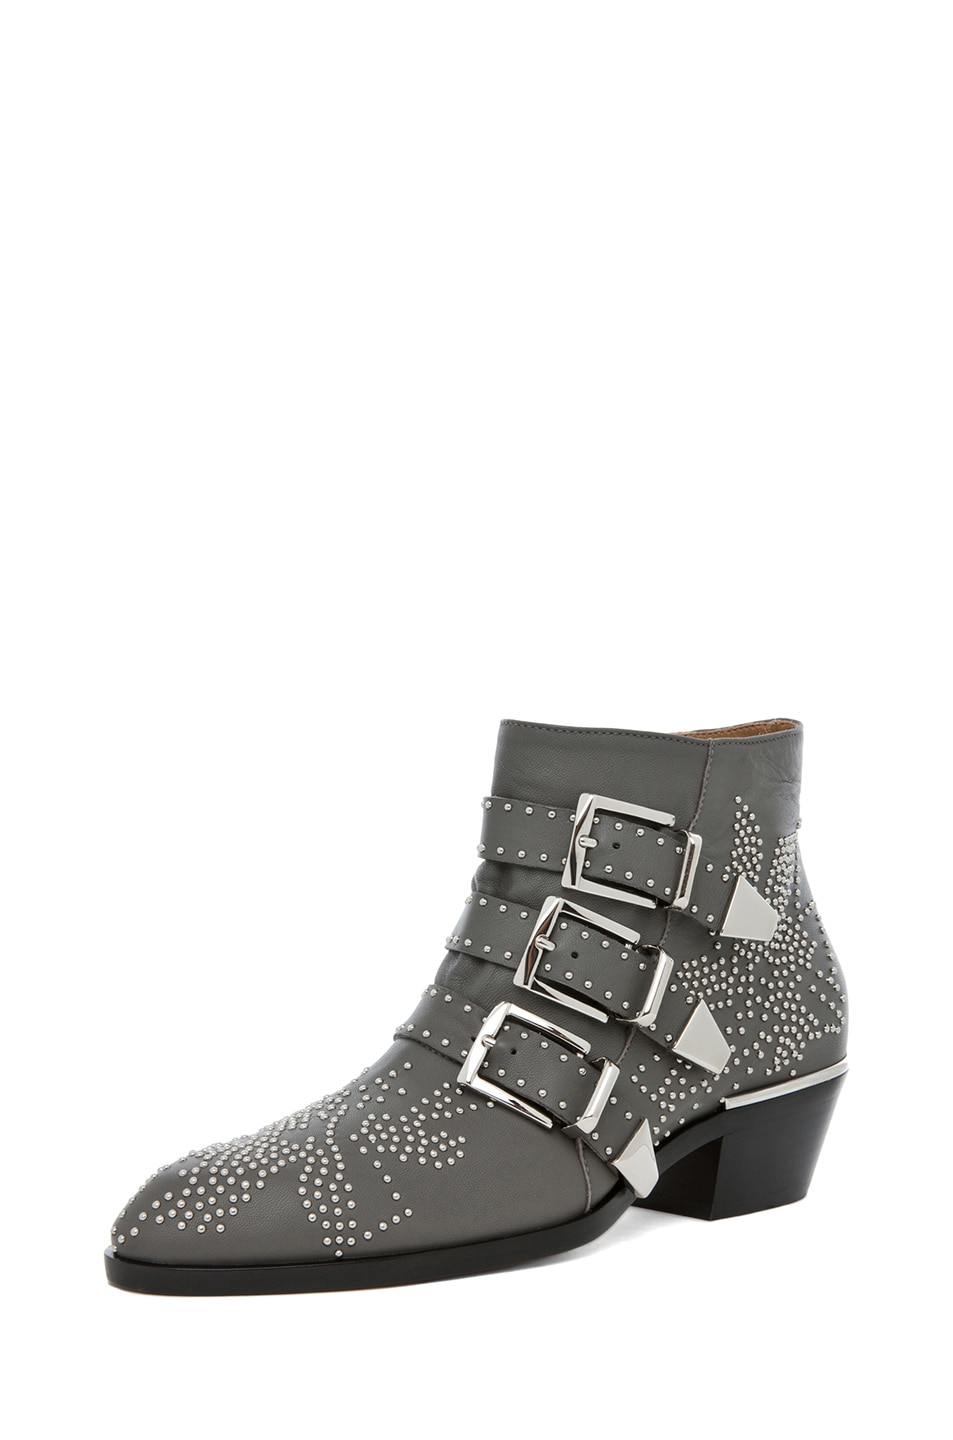 Image 2 of Chloe Susanna Studded Bootie in Charcoal